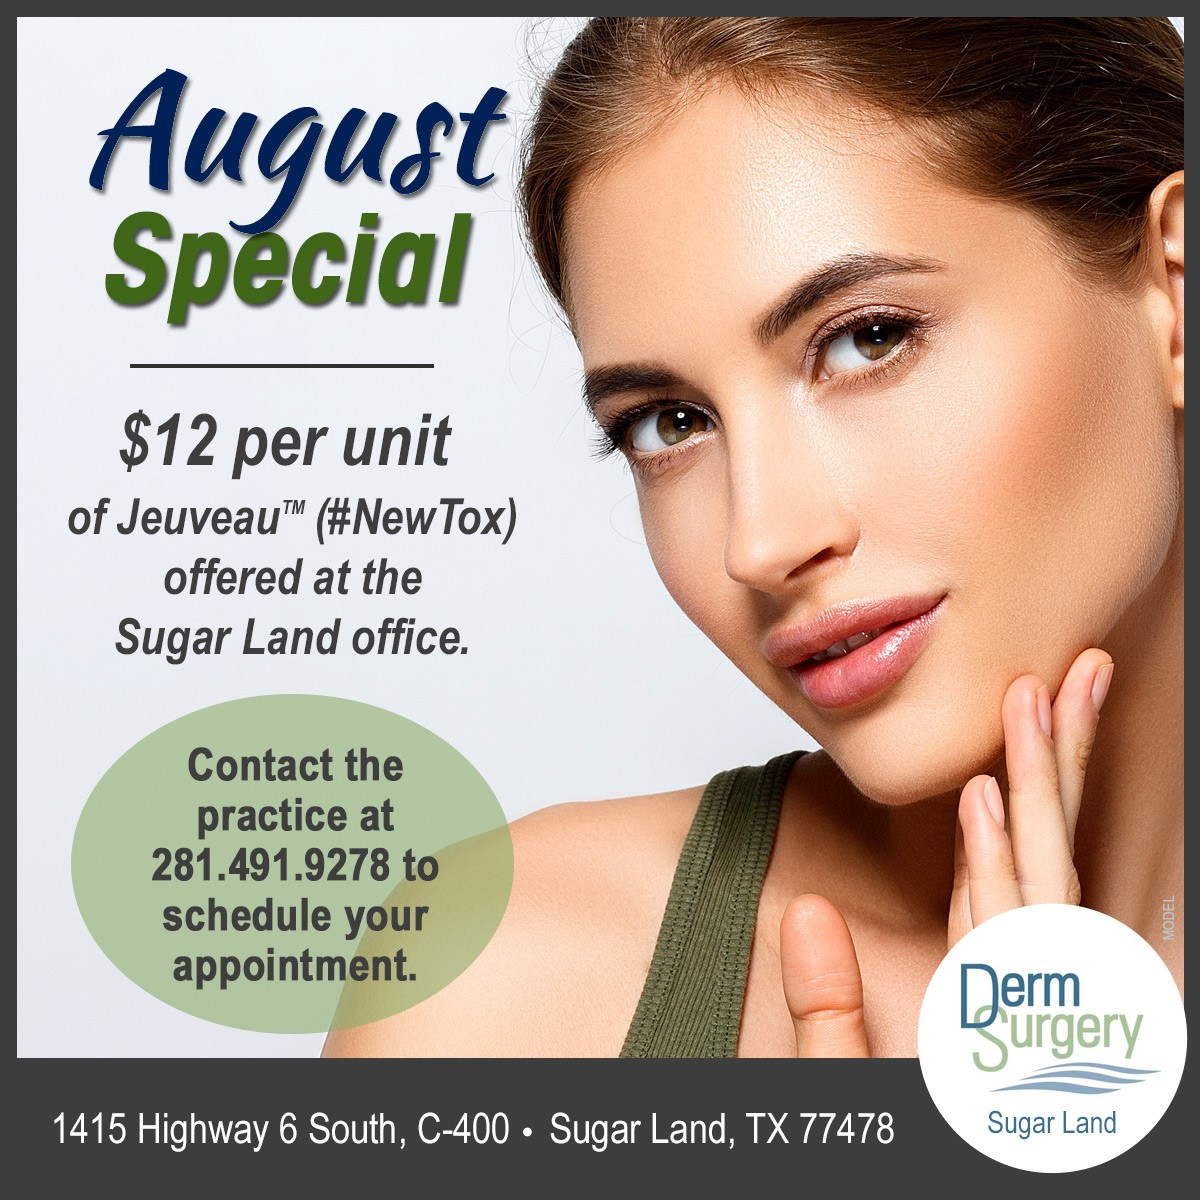 Dr. Riahi's August Special